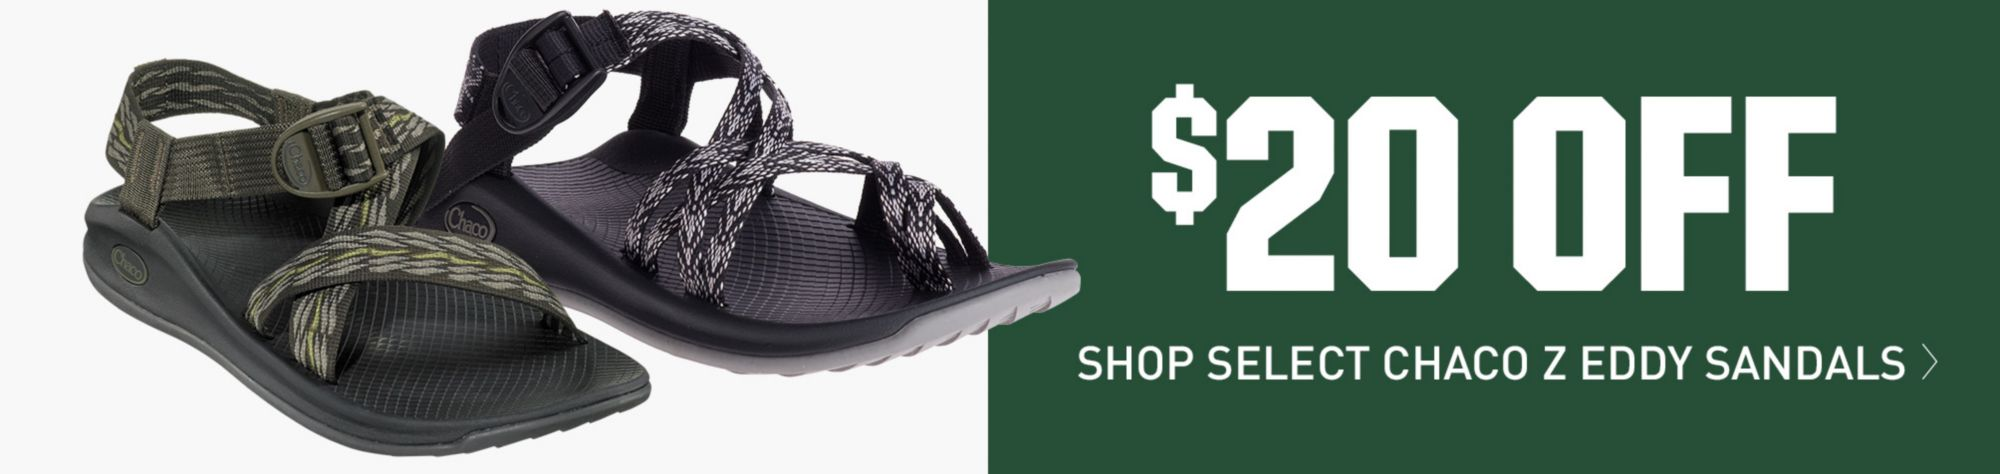 $20 Off Select Chaco Z Eddy Sandals - Shop Now